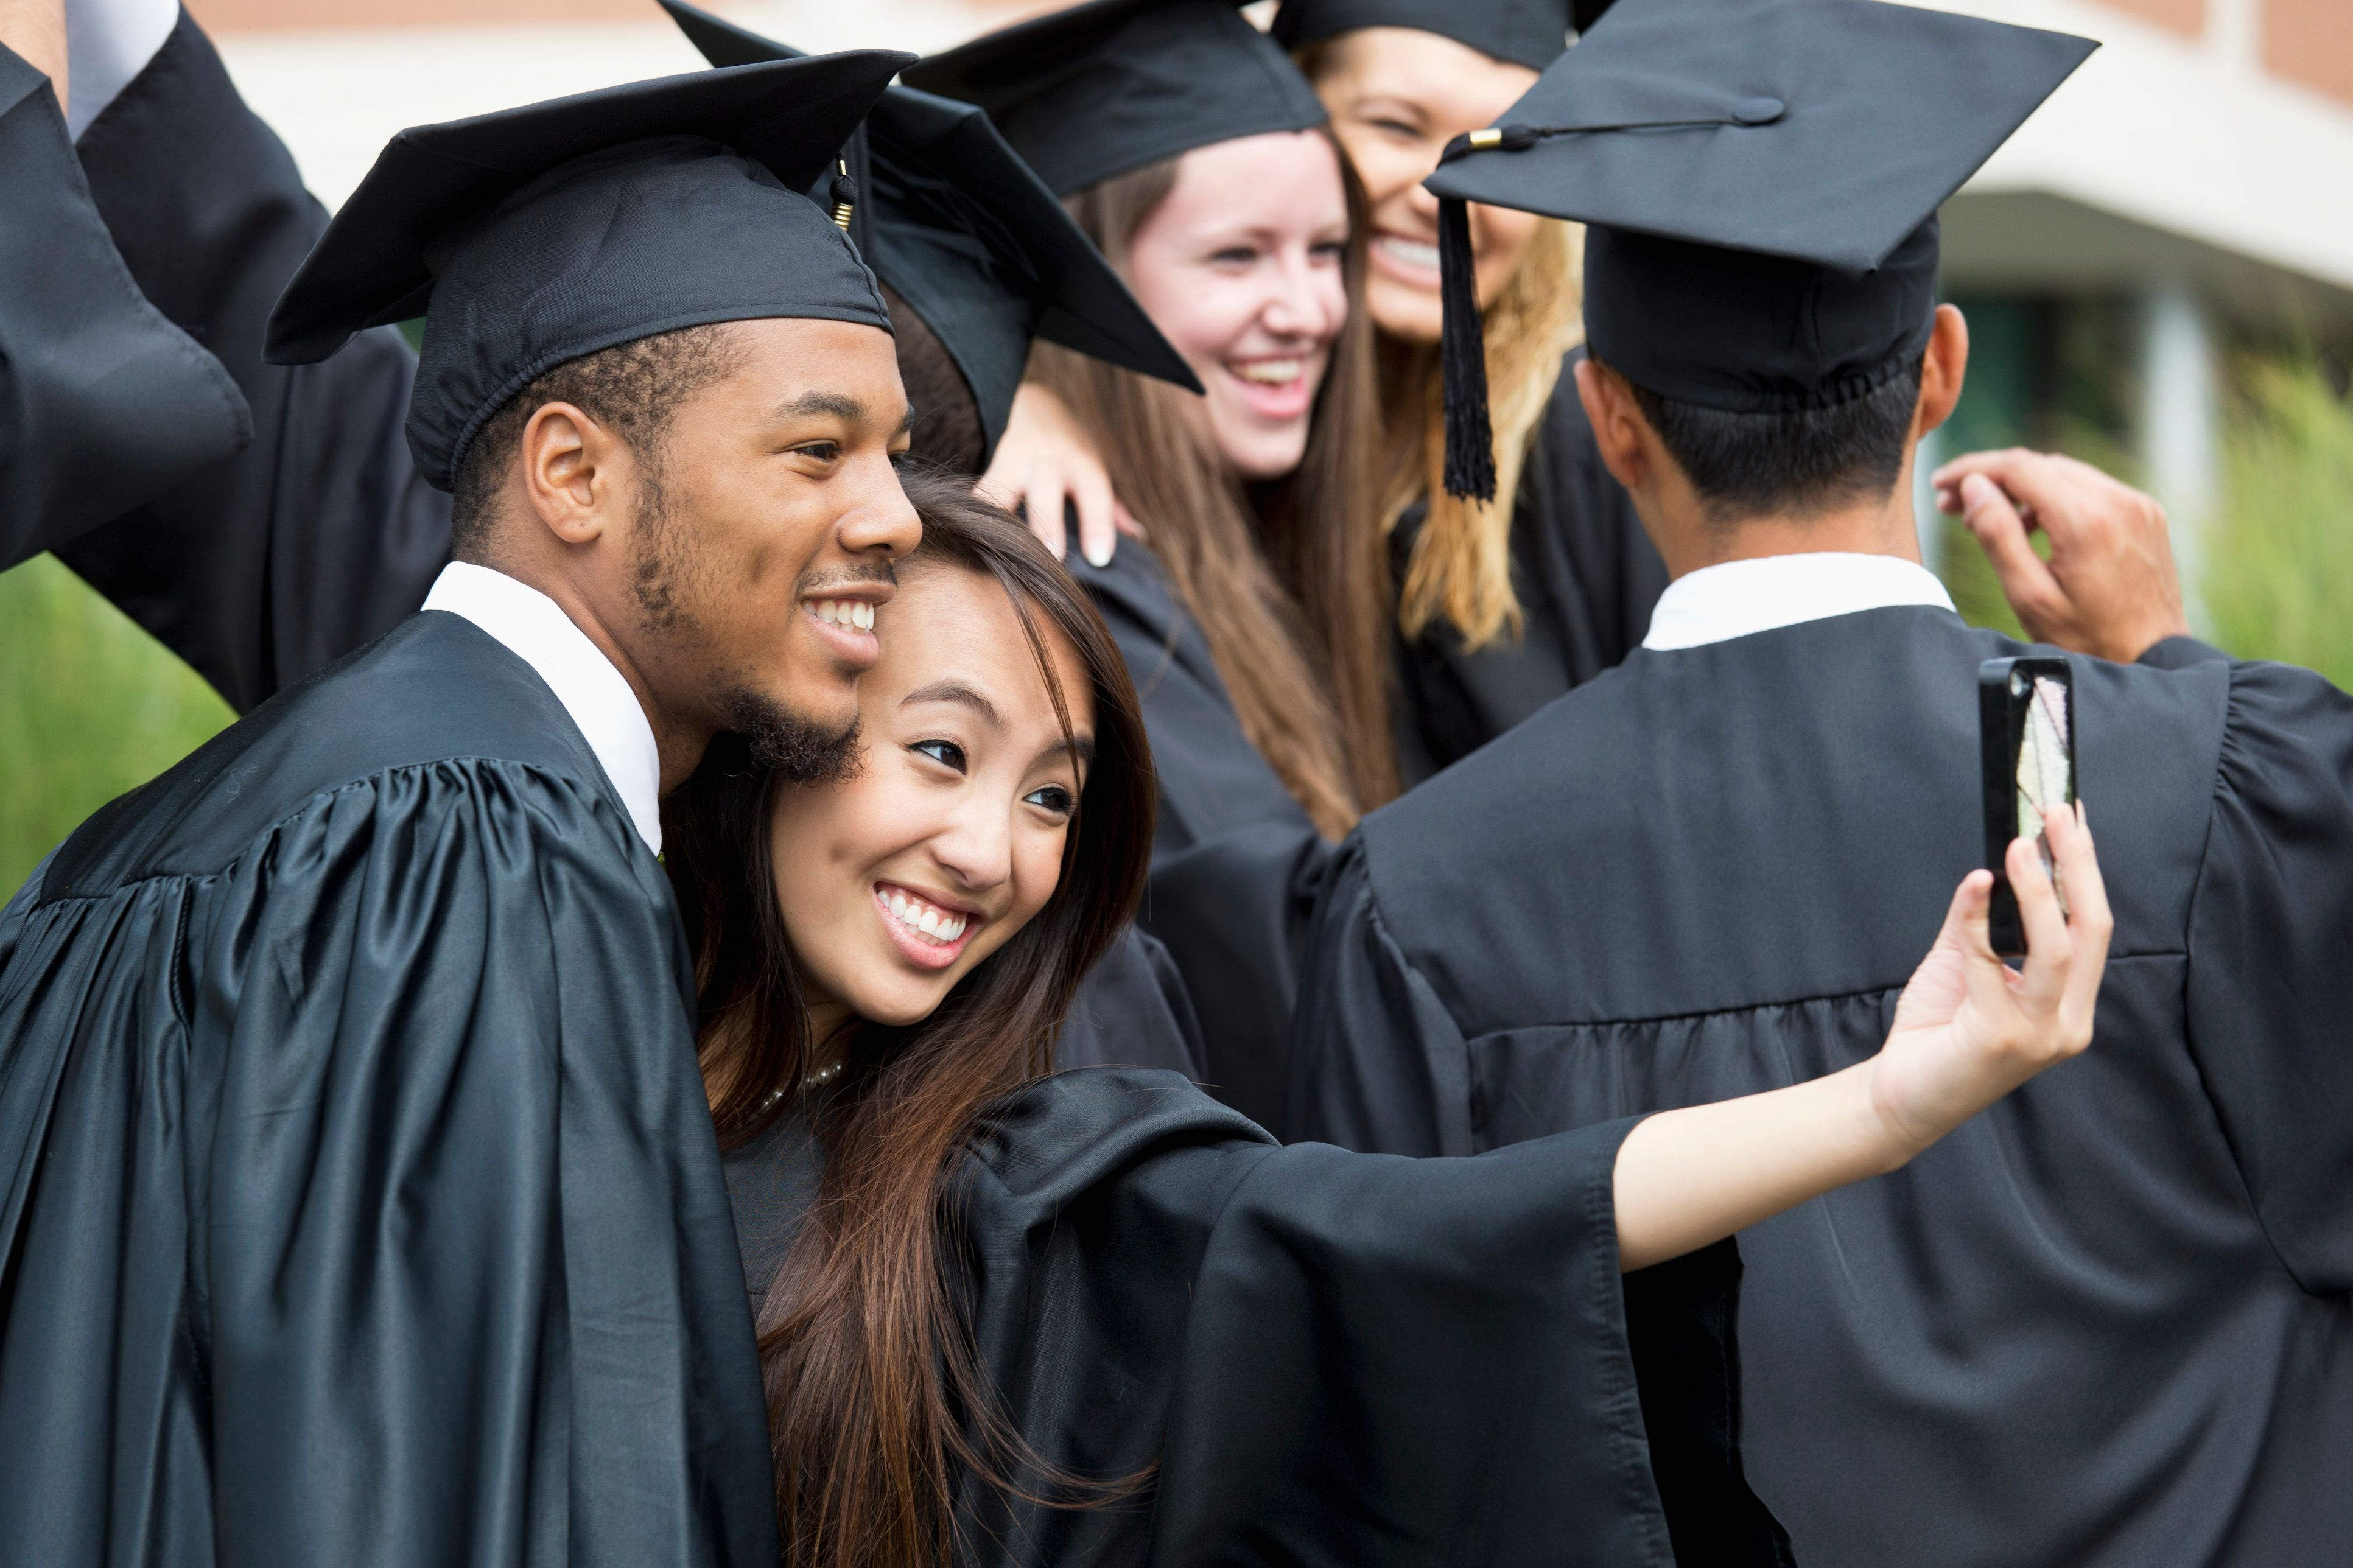 Your Graduation Selfie Could Help A Fraudster Beat You To Your Dream